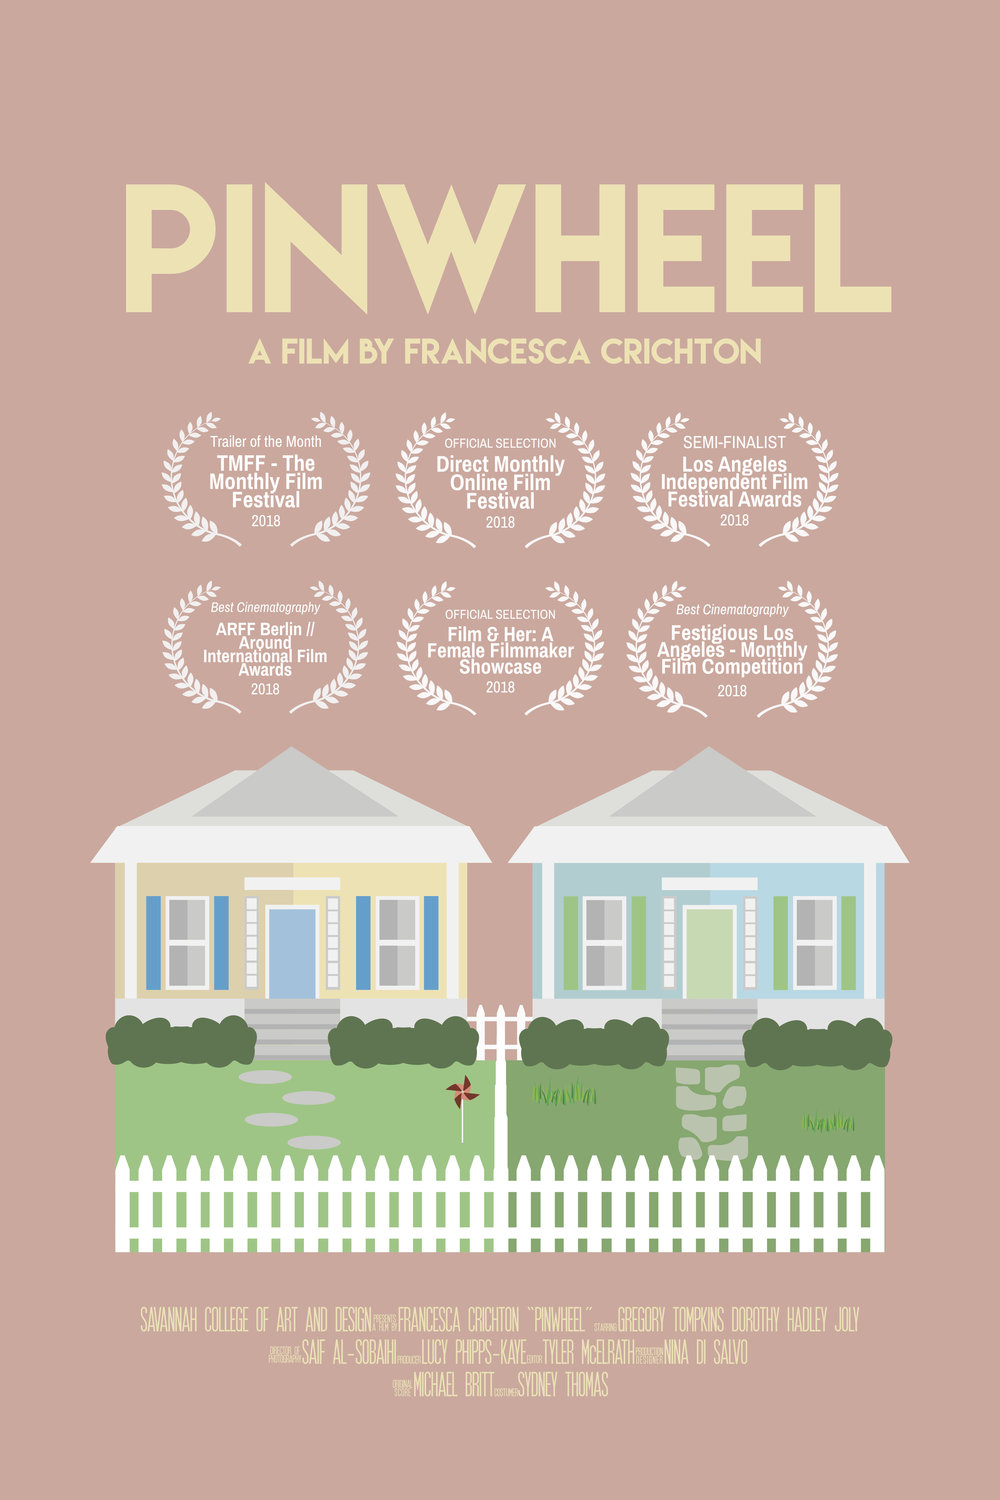 Around International film festival (Berlin)-'Best Cinematography' - Year: 2018Film: PinwheelRole: Director of PhotographyIn a quest to find a new love, John turns to his lawn decoration in the hope of wooing his neighbor.